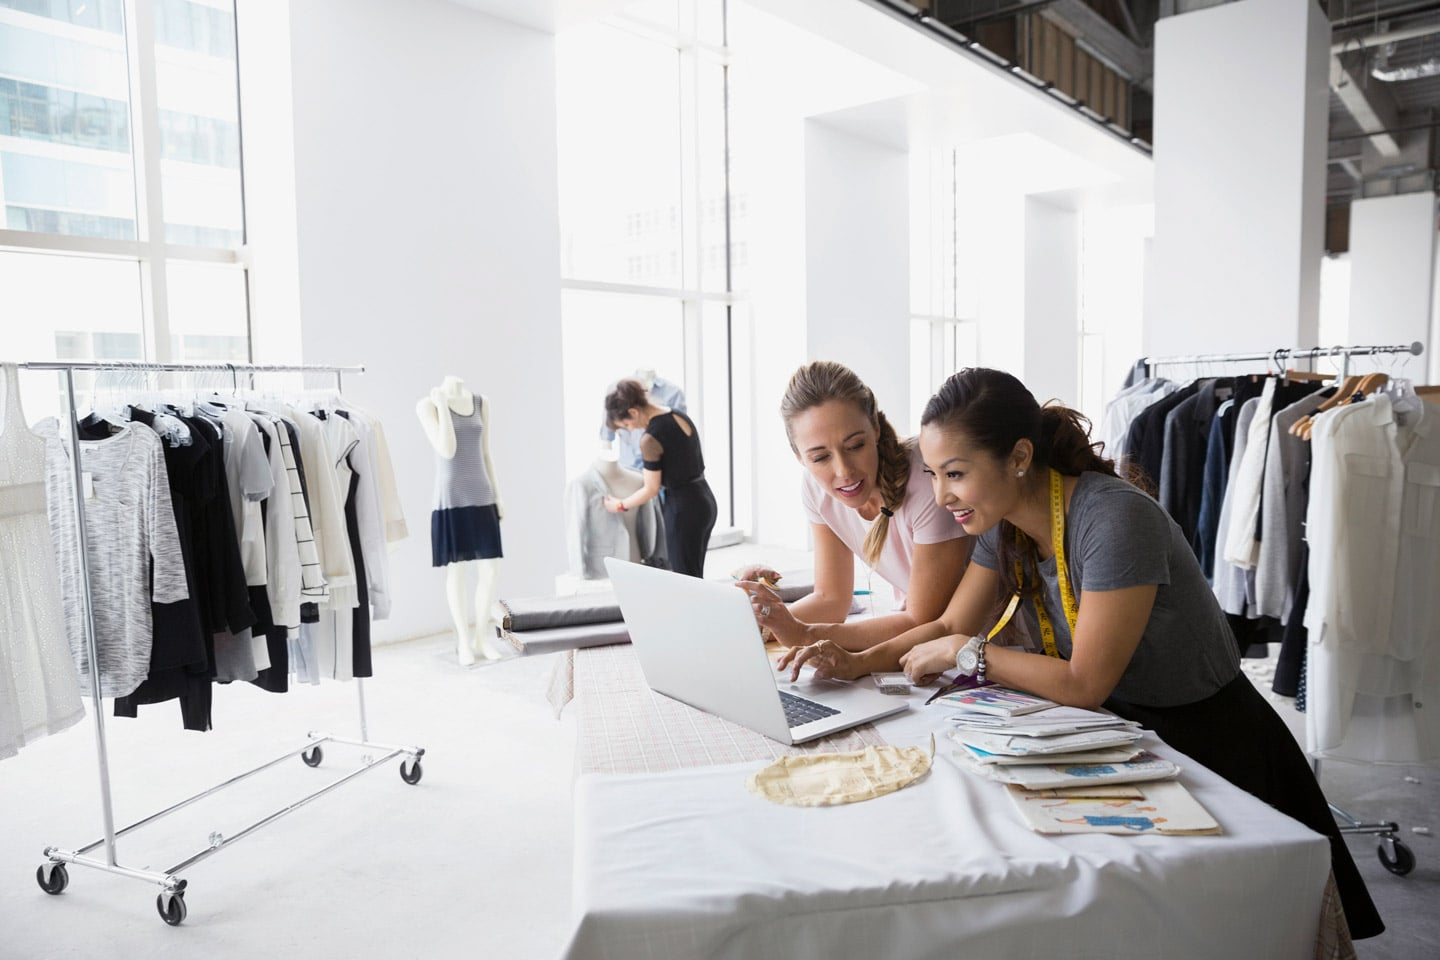 Two female fashion retail store employees working inside a store